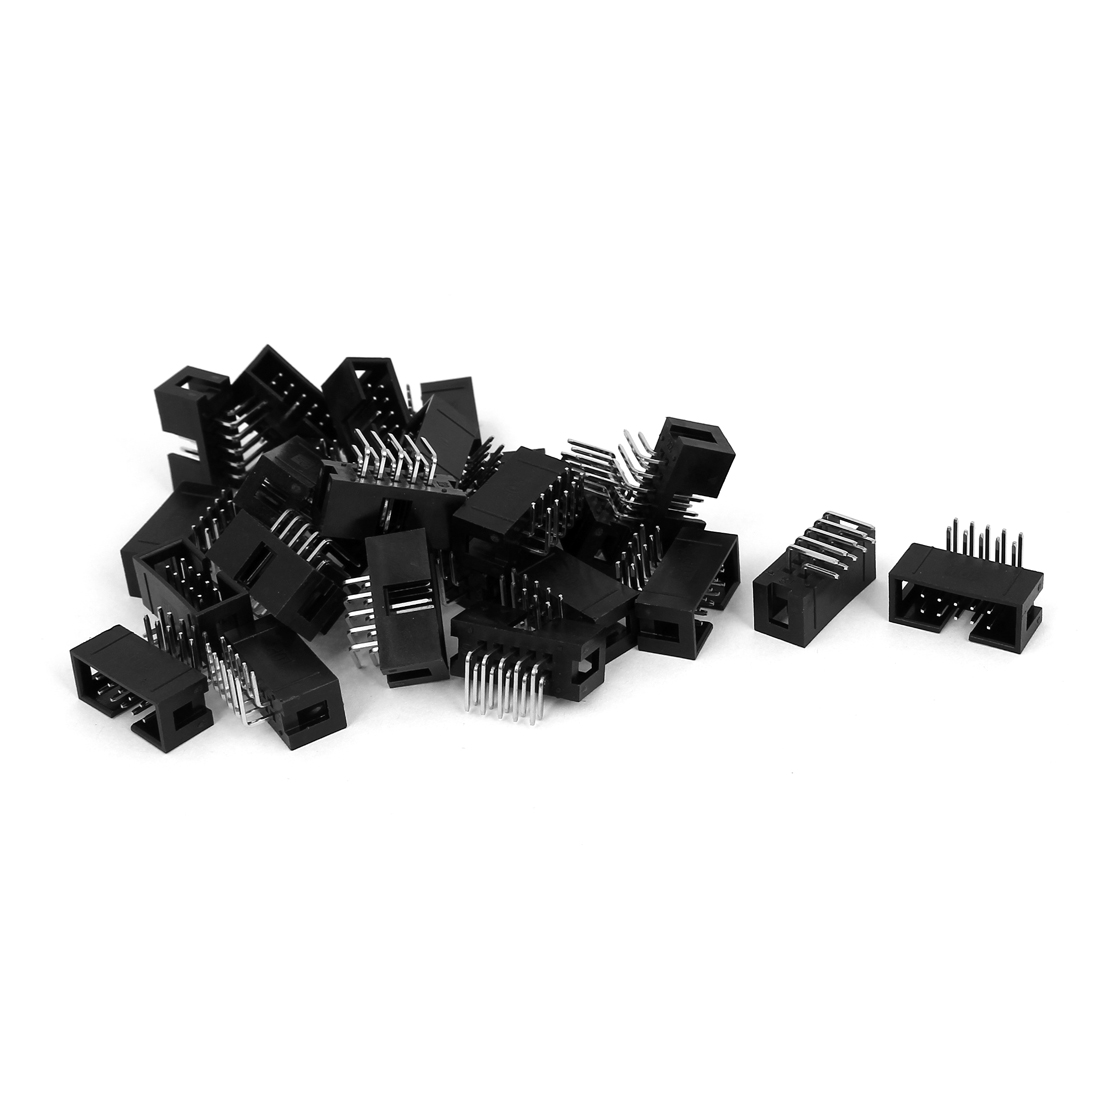 26 Pcs Right Angle 2x5pins 2.54mm Pitch IDC Box Pin Headers Connectors